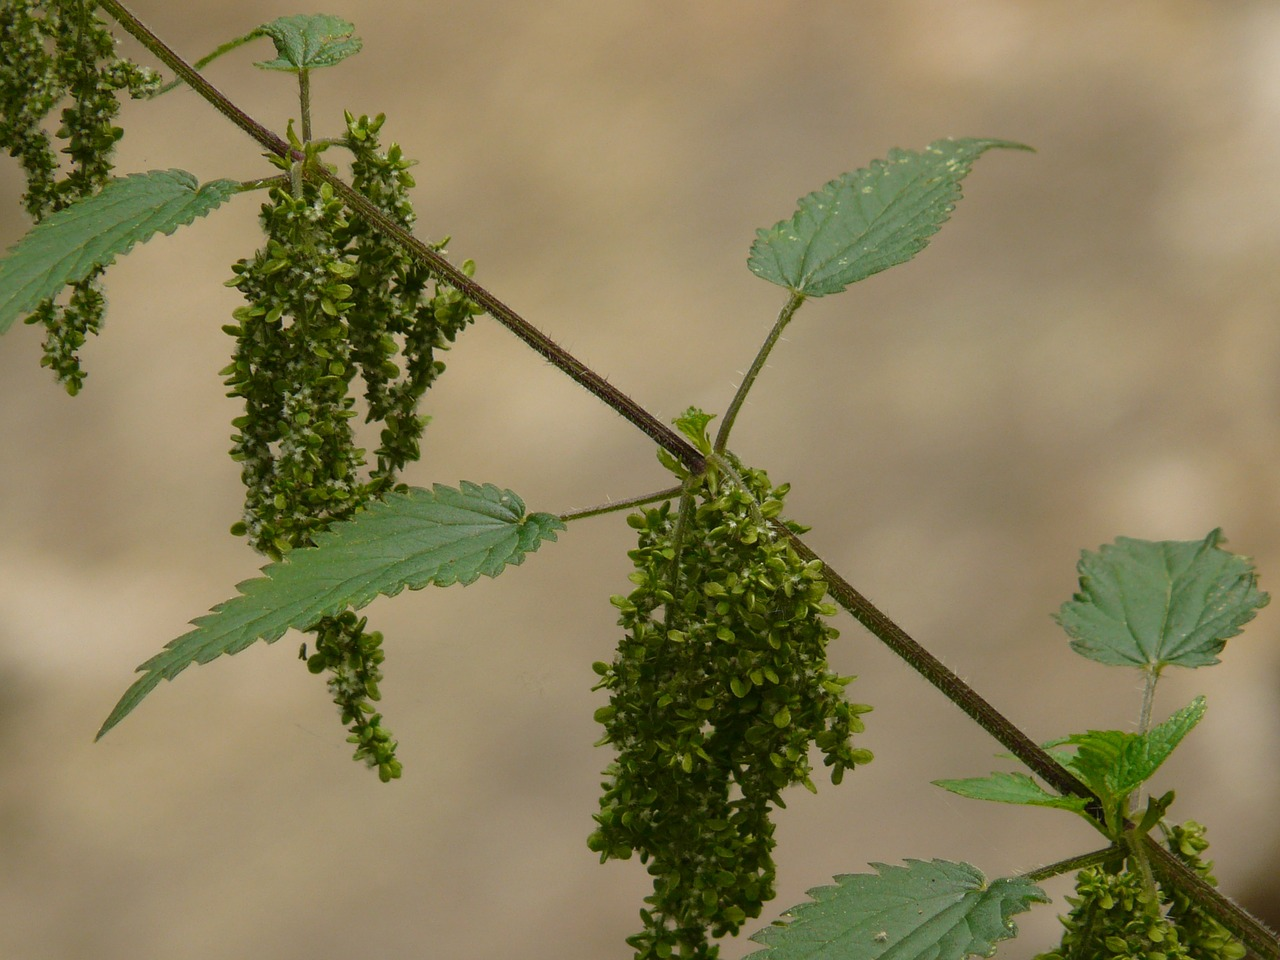 stinging nettle back light nature free photo